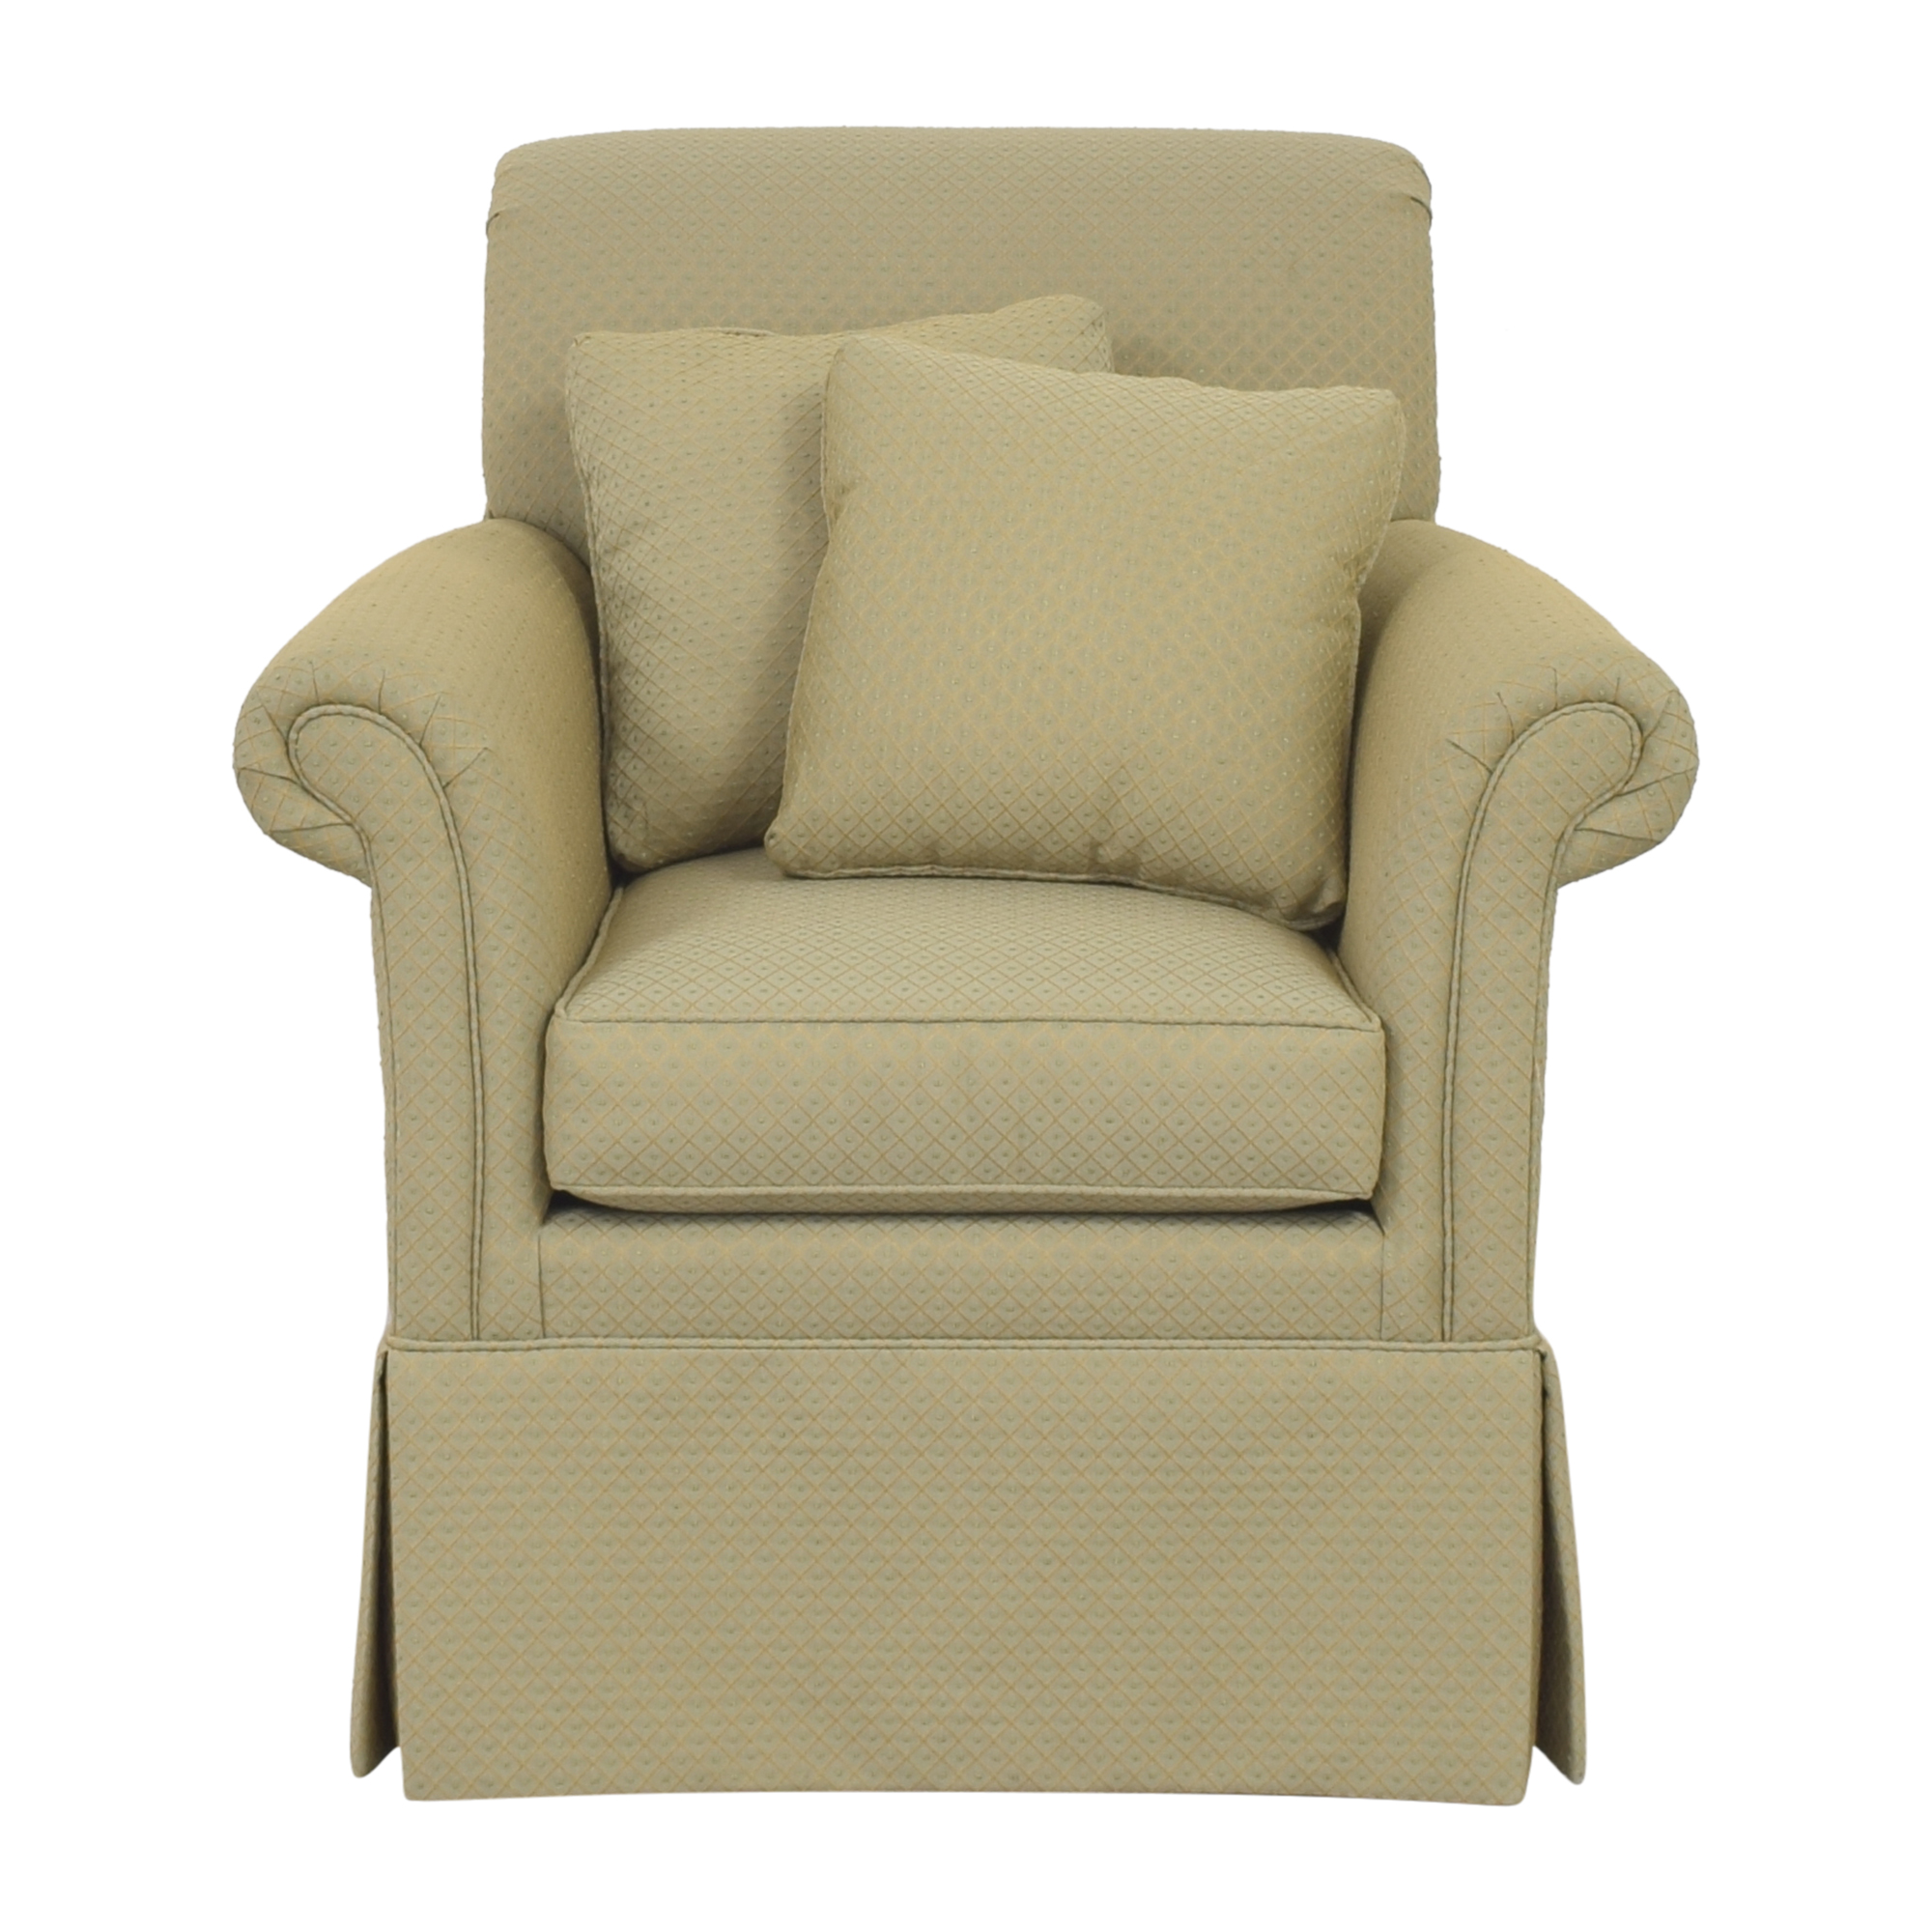 Ethan Allen Skirted Accent Chair / Chairs